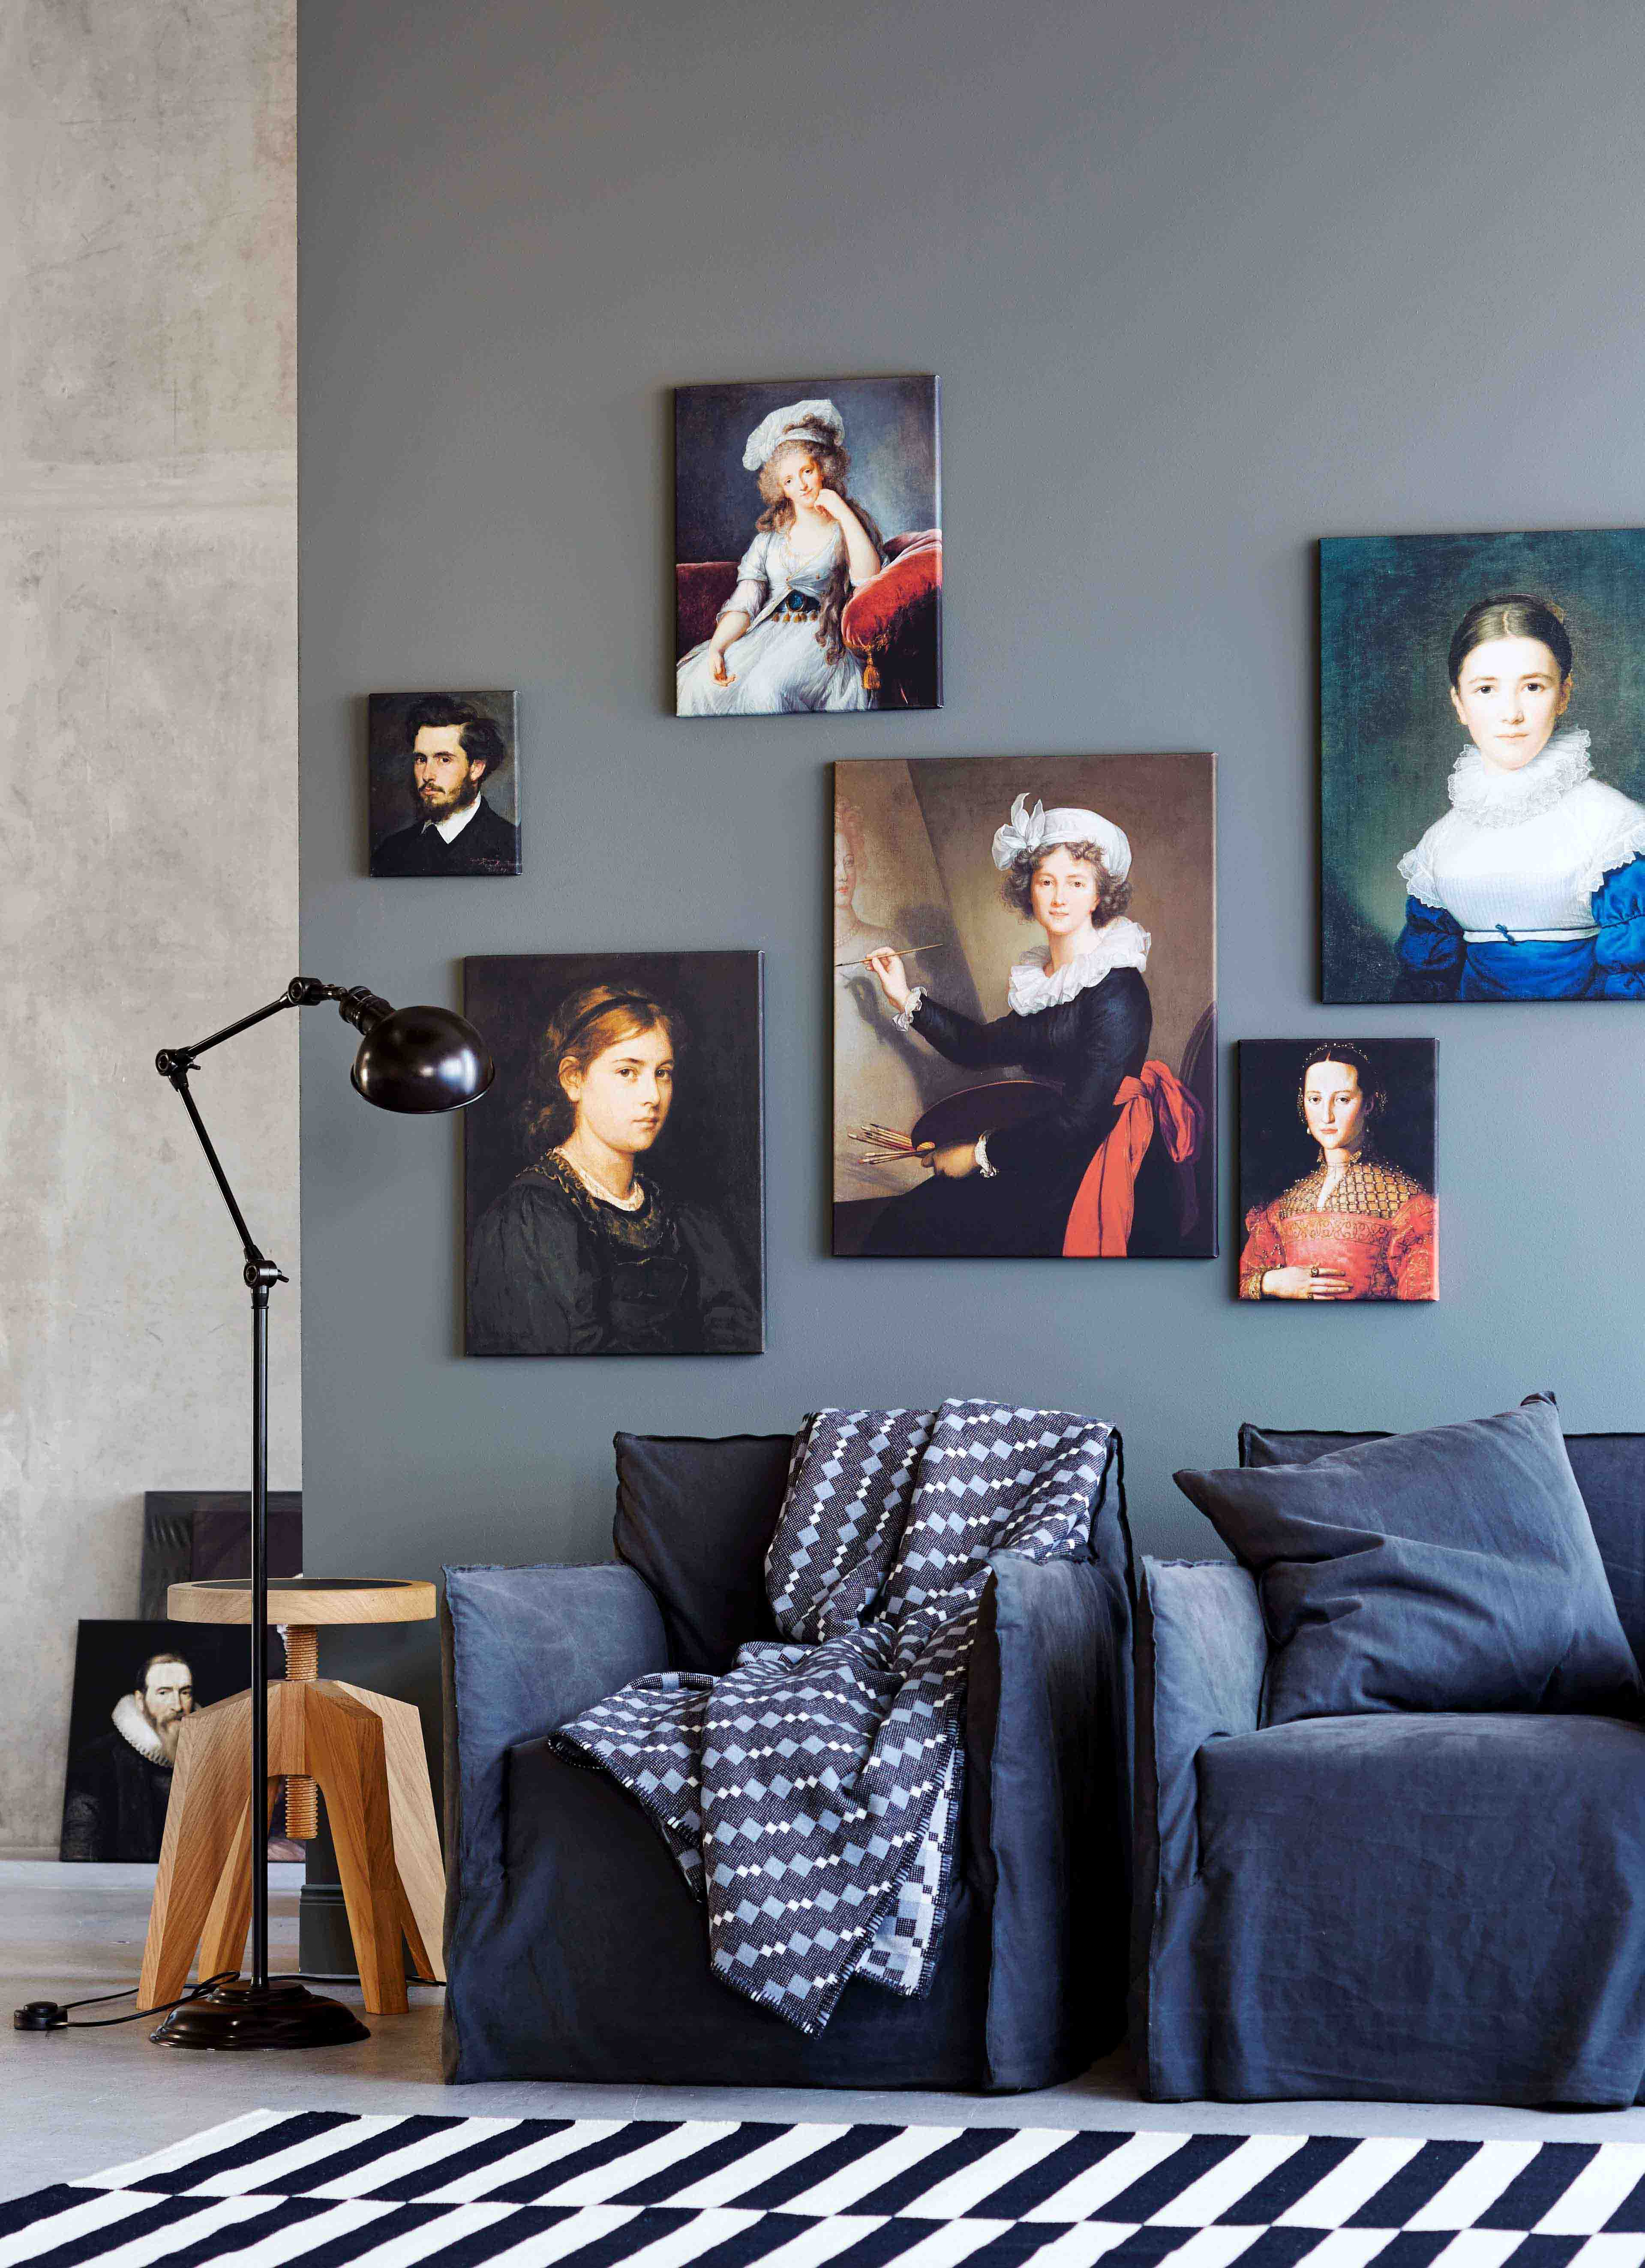 Bilder als Wanddekoration, Pictures as wall decoration